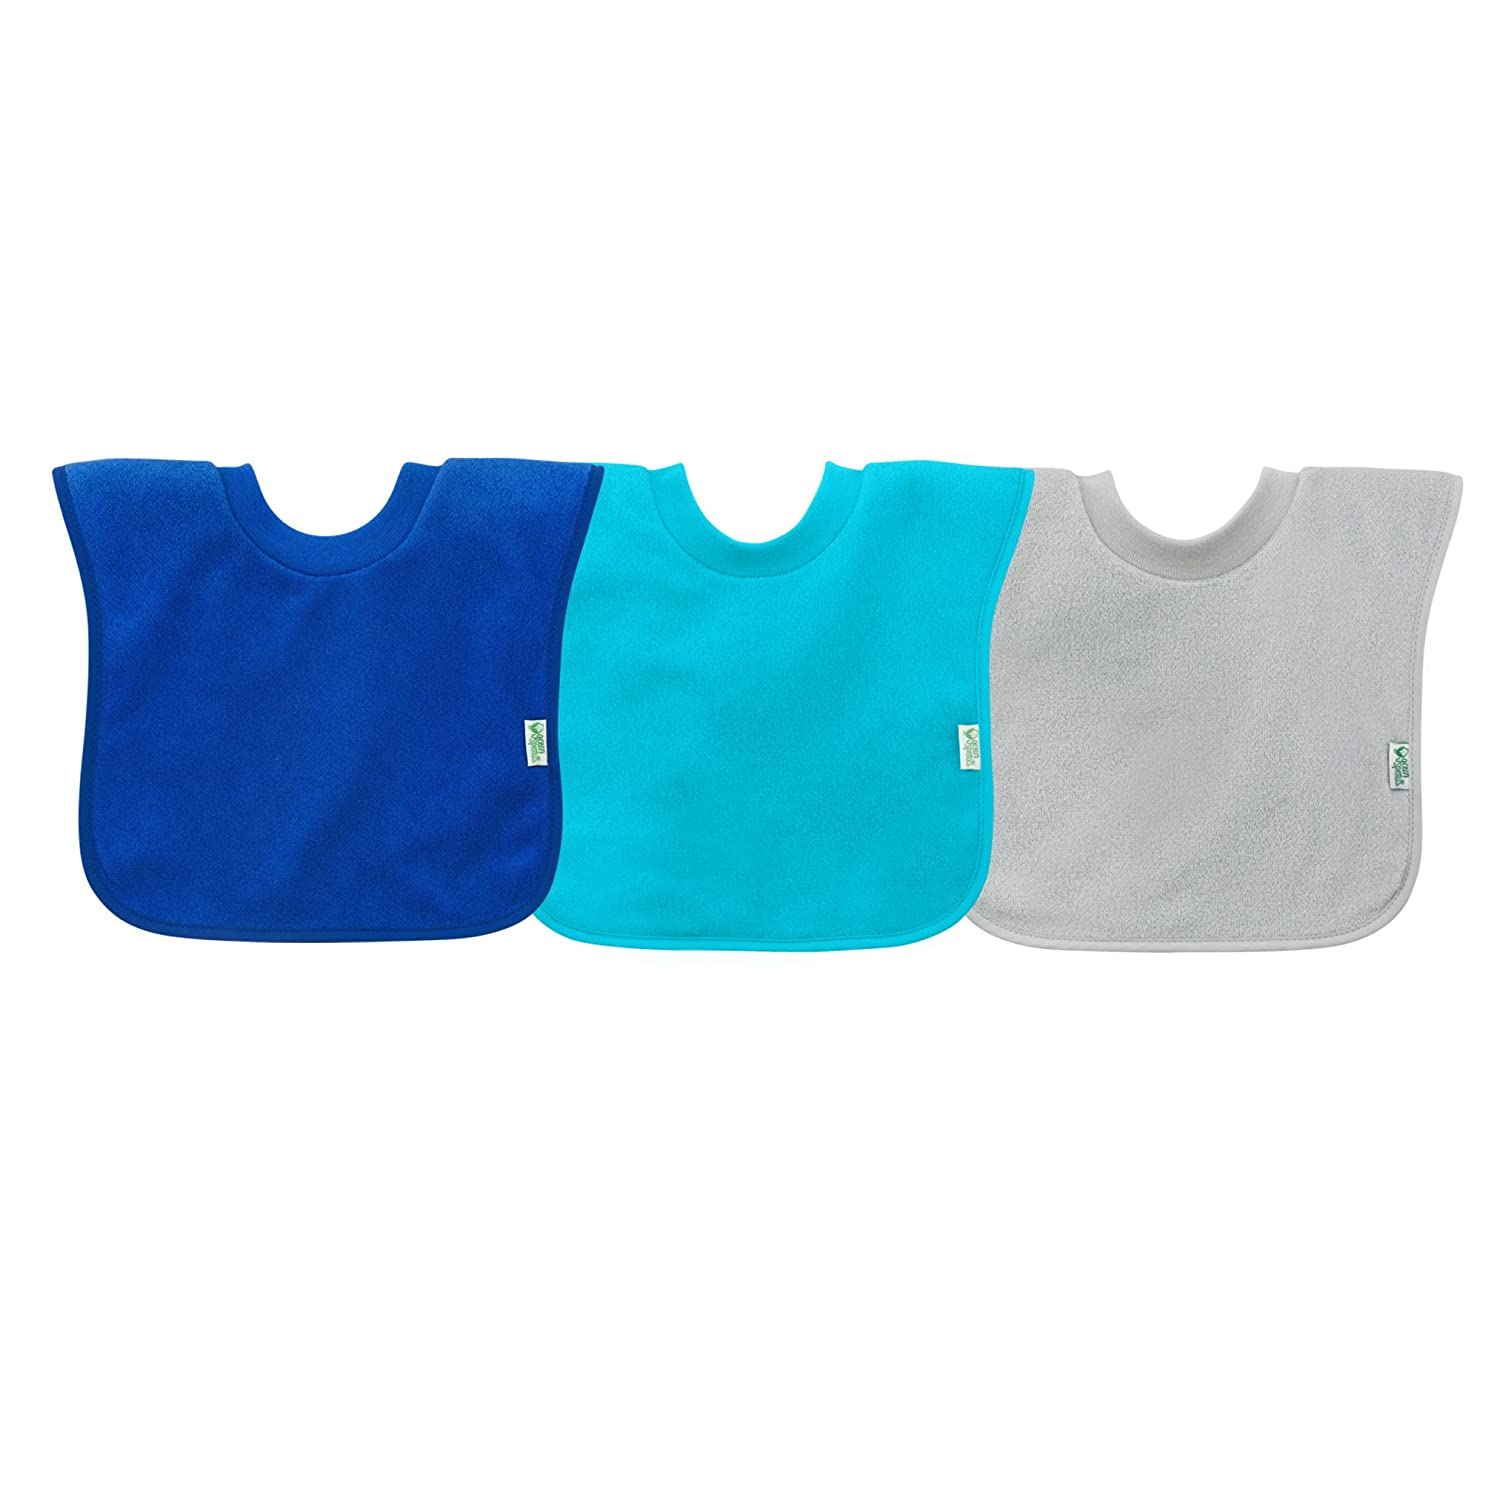 green sprouts Pull-Over Stay-Dry Bibs (3 Pack) | Convenient Stay-Put Protection | Wide Coverage & Waterproof Protection, Stretchy Collar, Machine Washable iPlay 101100-602-25